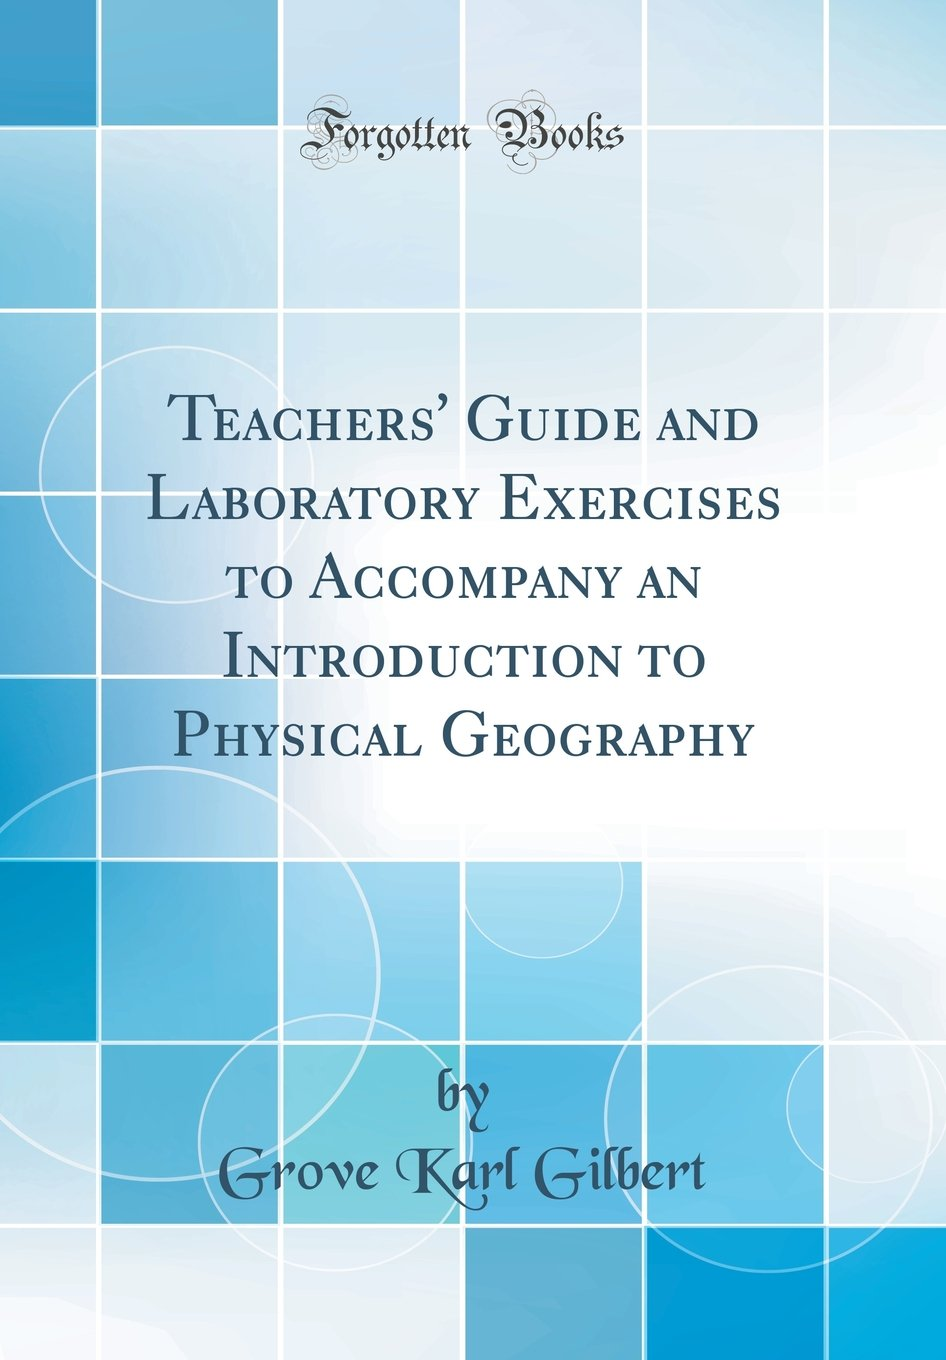 Teachers' Guide and Laboratory Exercises to Accompany an Introduction to  Physical Geography (Classic Reprint): Grove Karl Gilbert: 9780365532651: ...